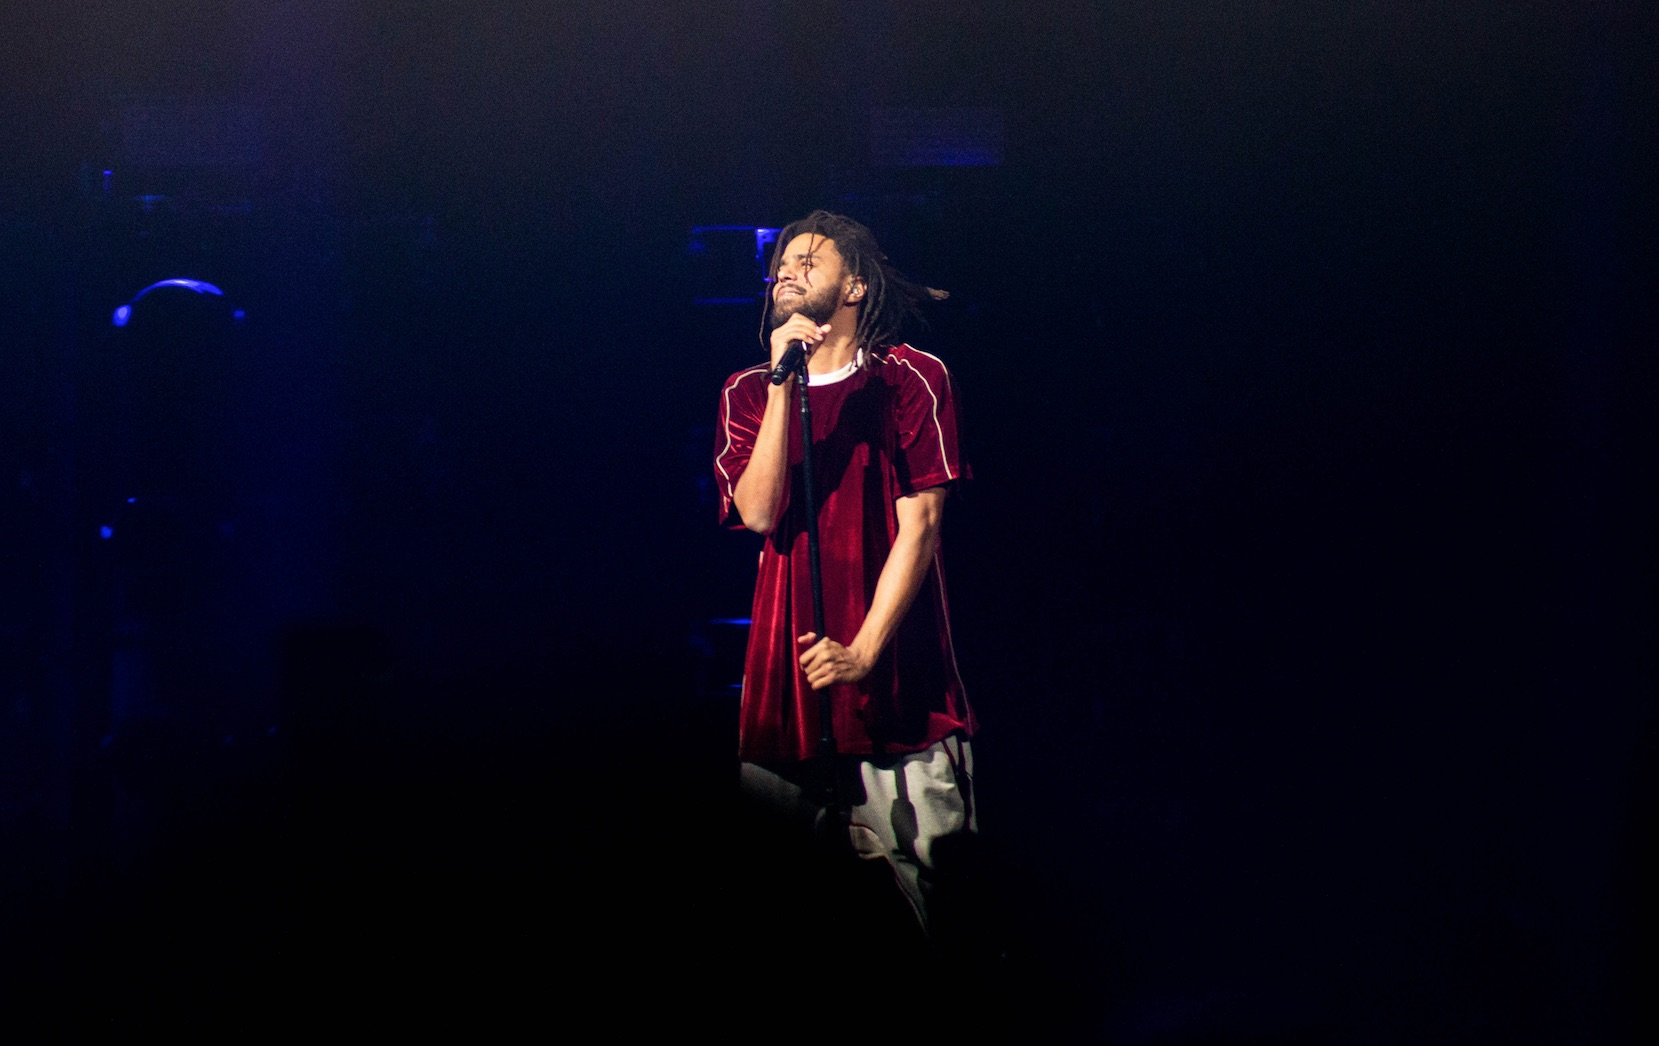 J. Cole Responds to New Song Backlash, Confirms It's About Noname